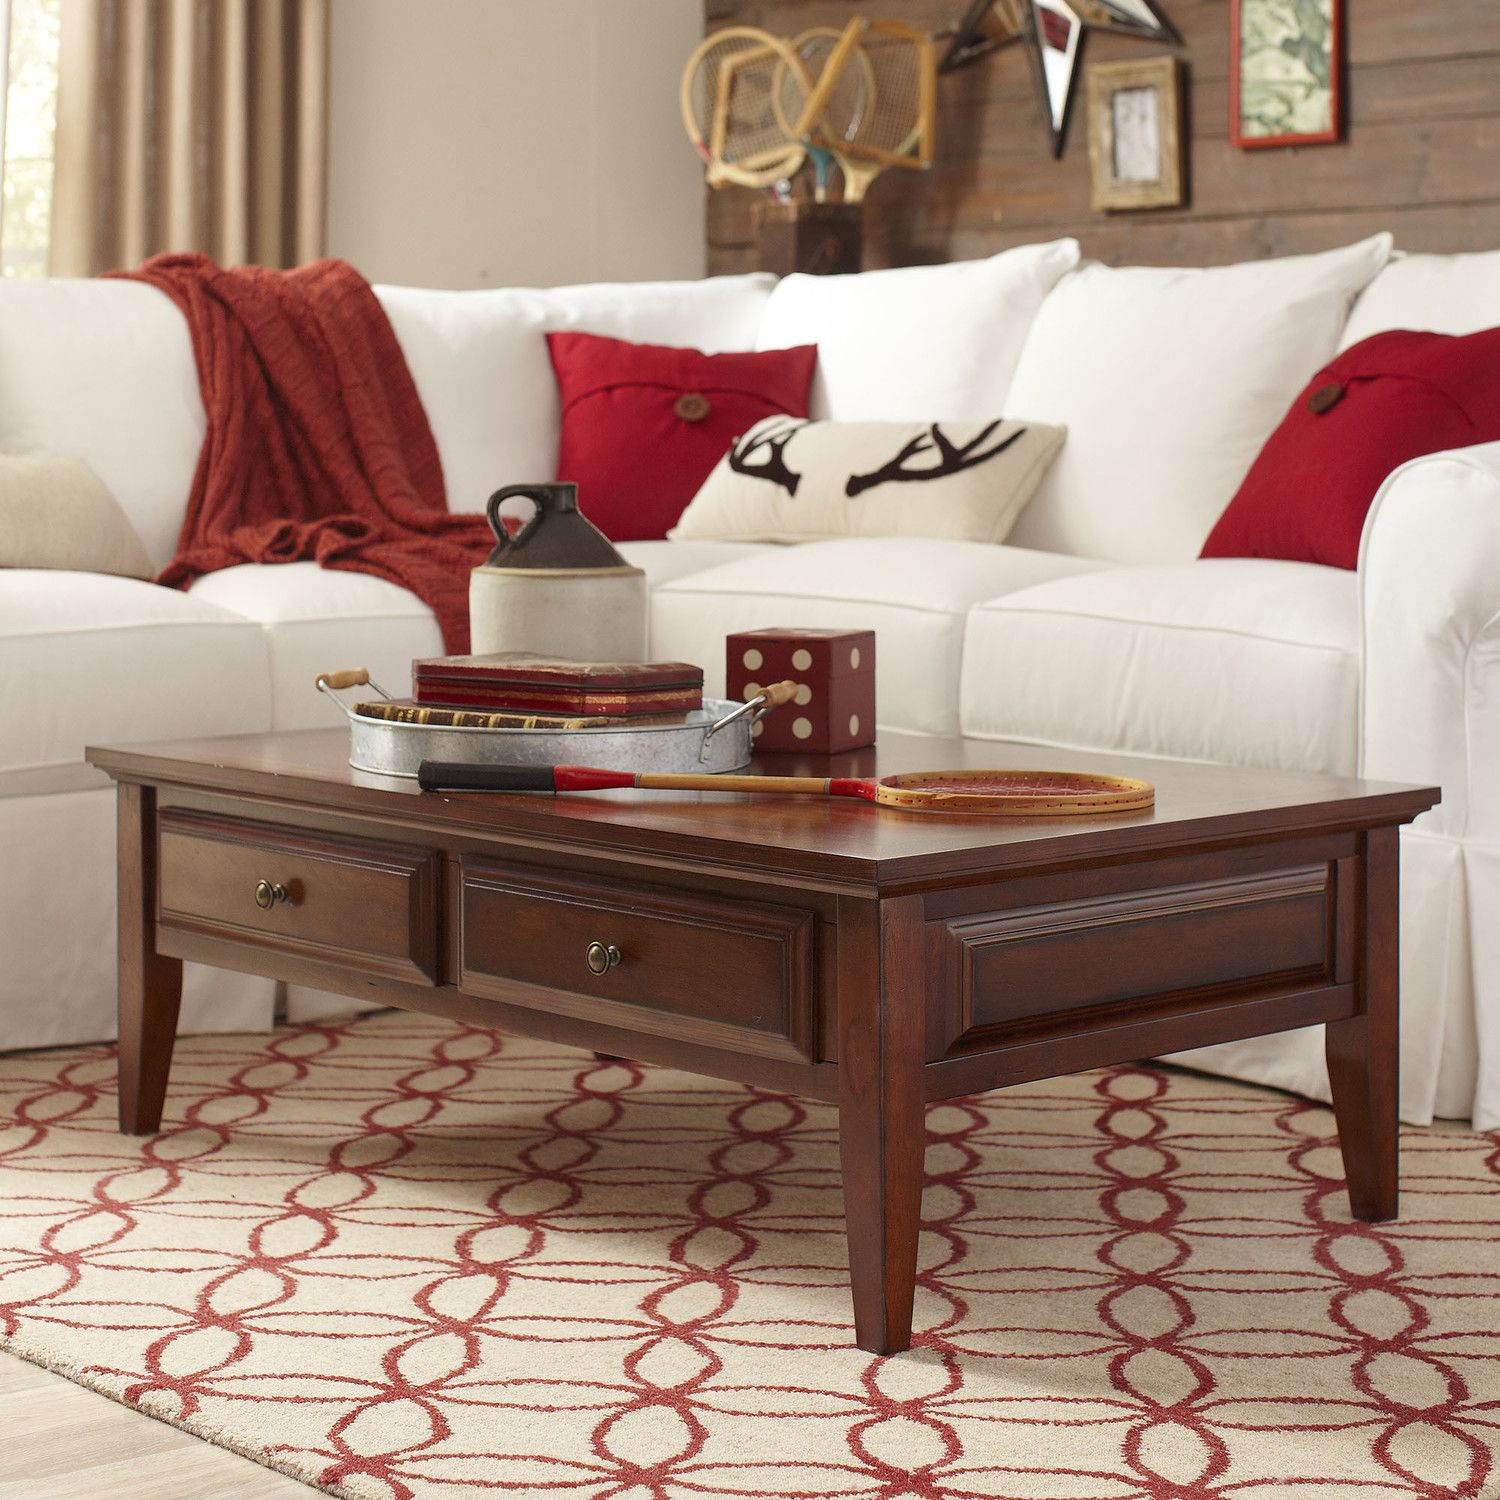 Birch Lane Howland Coffee Table Coffee Table Furniture Traditional Furniture [ 1500 x 1500 Pixel ]